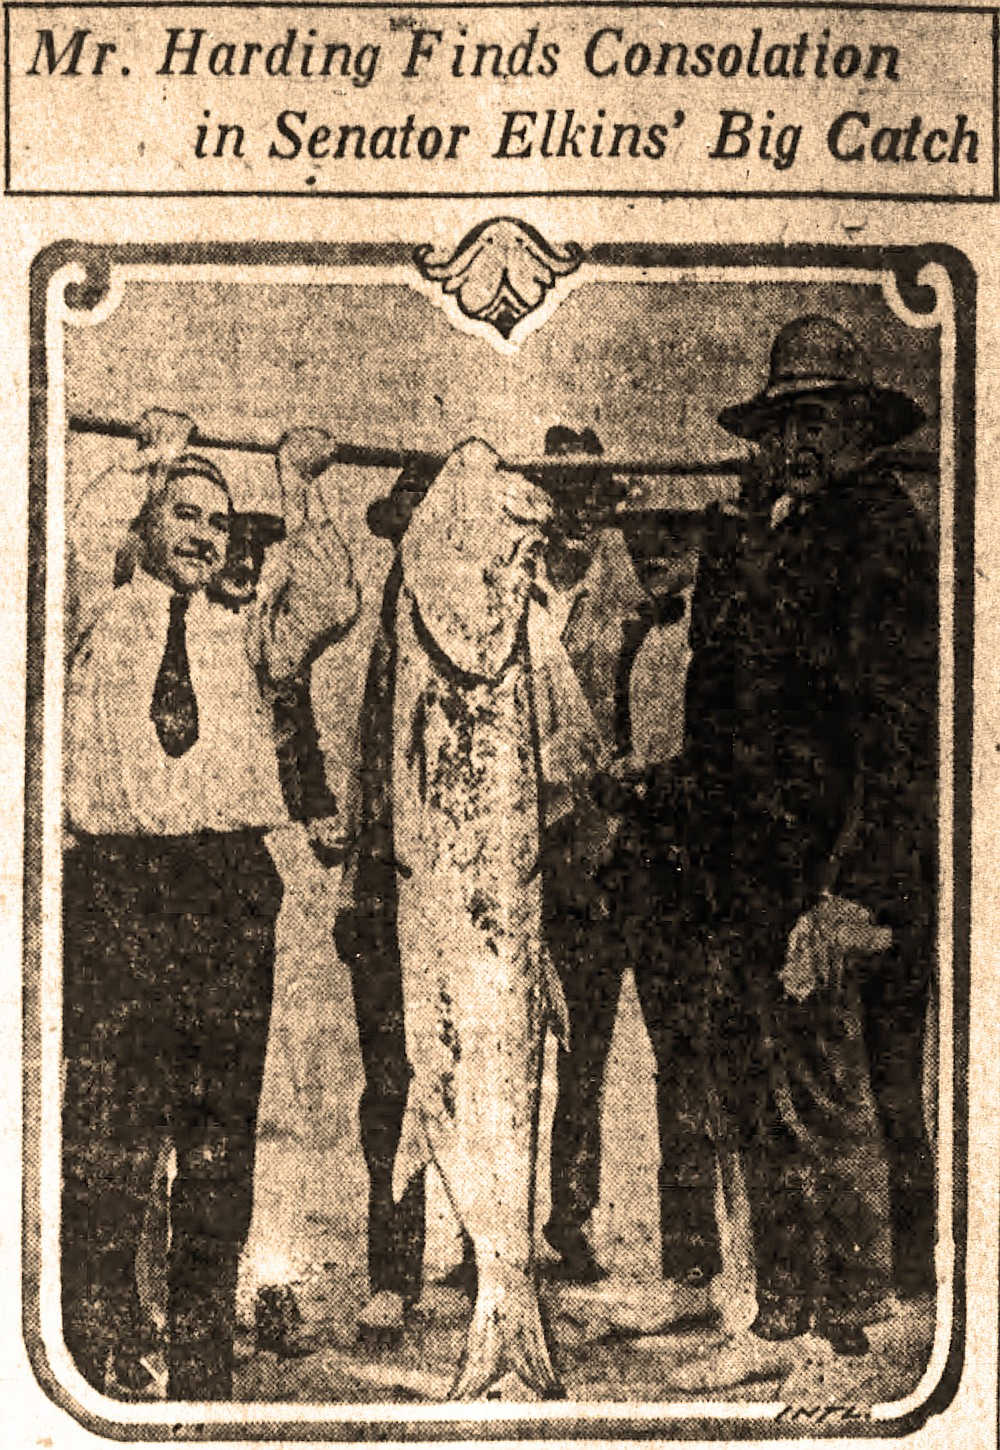 President-elect Warren G. Harding went fishing during his vacation in Texas and Panama, as reported in the Nov. 21, 1920, Arkansas Gazette. (Arkansas Democrat-Gazette)